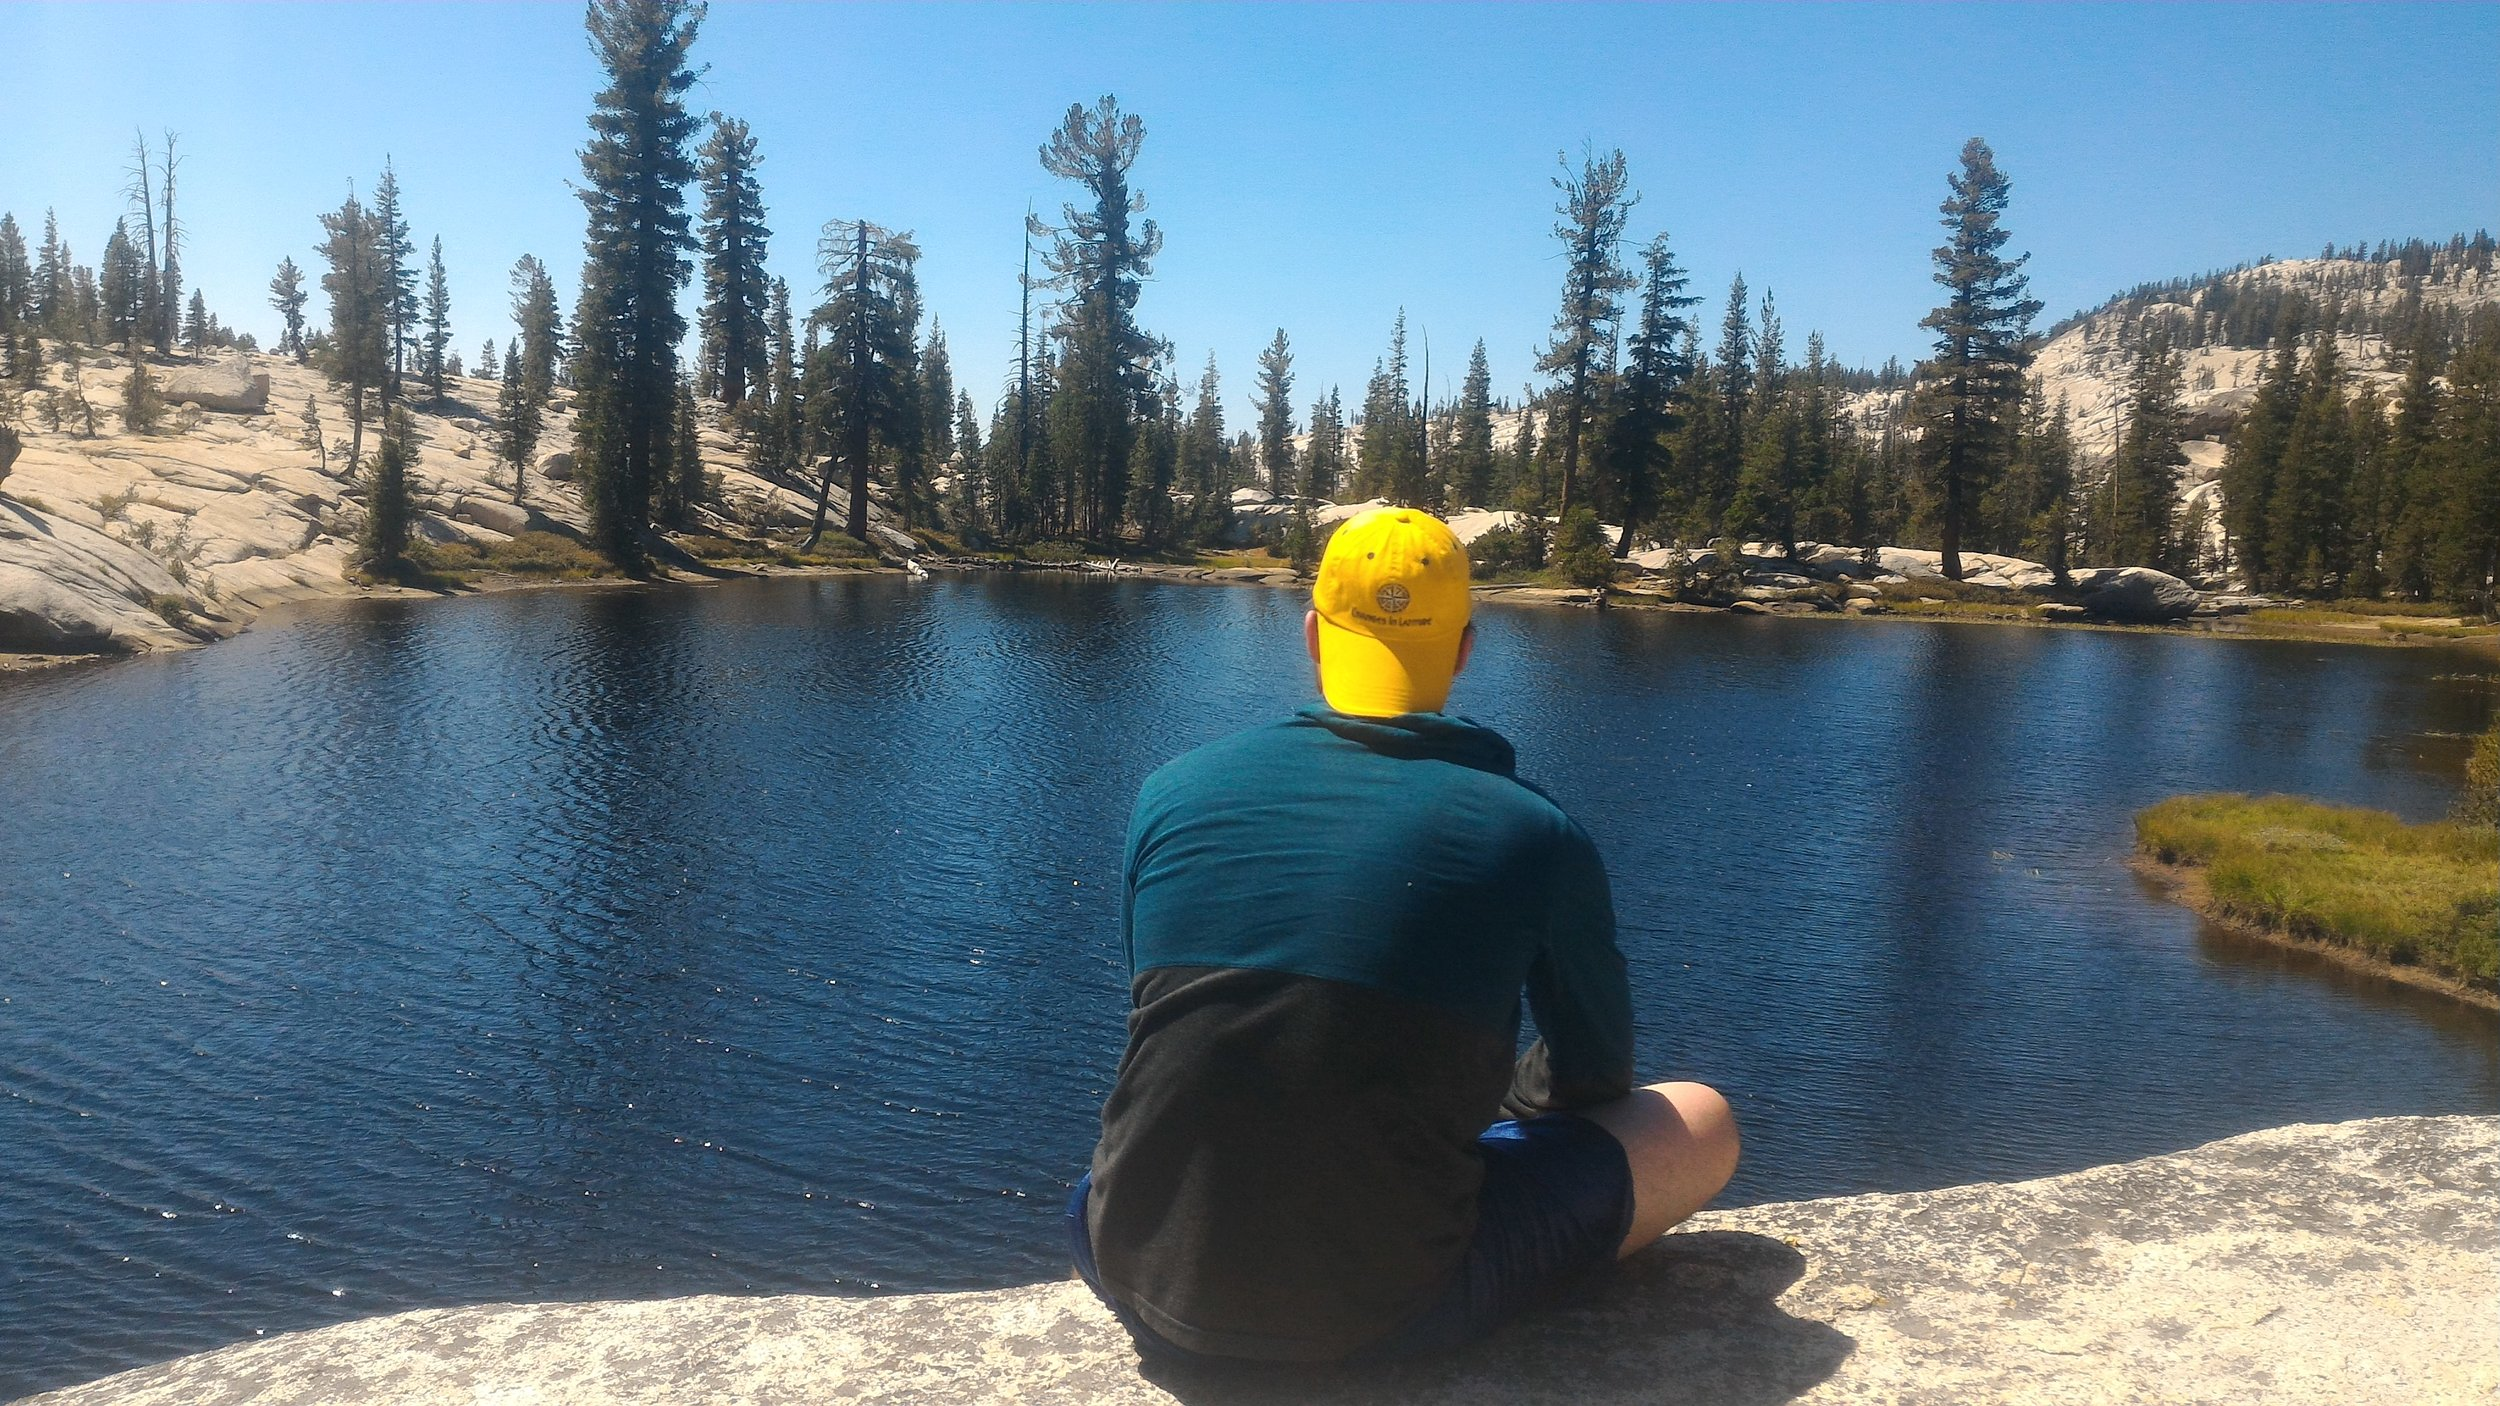 A local Changes in Latitude fan, Jonathan, taking in the view at Raisin Lake, Yosemite.